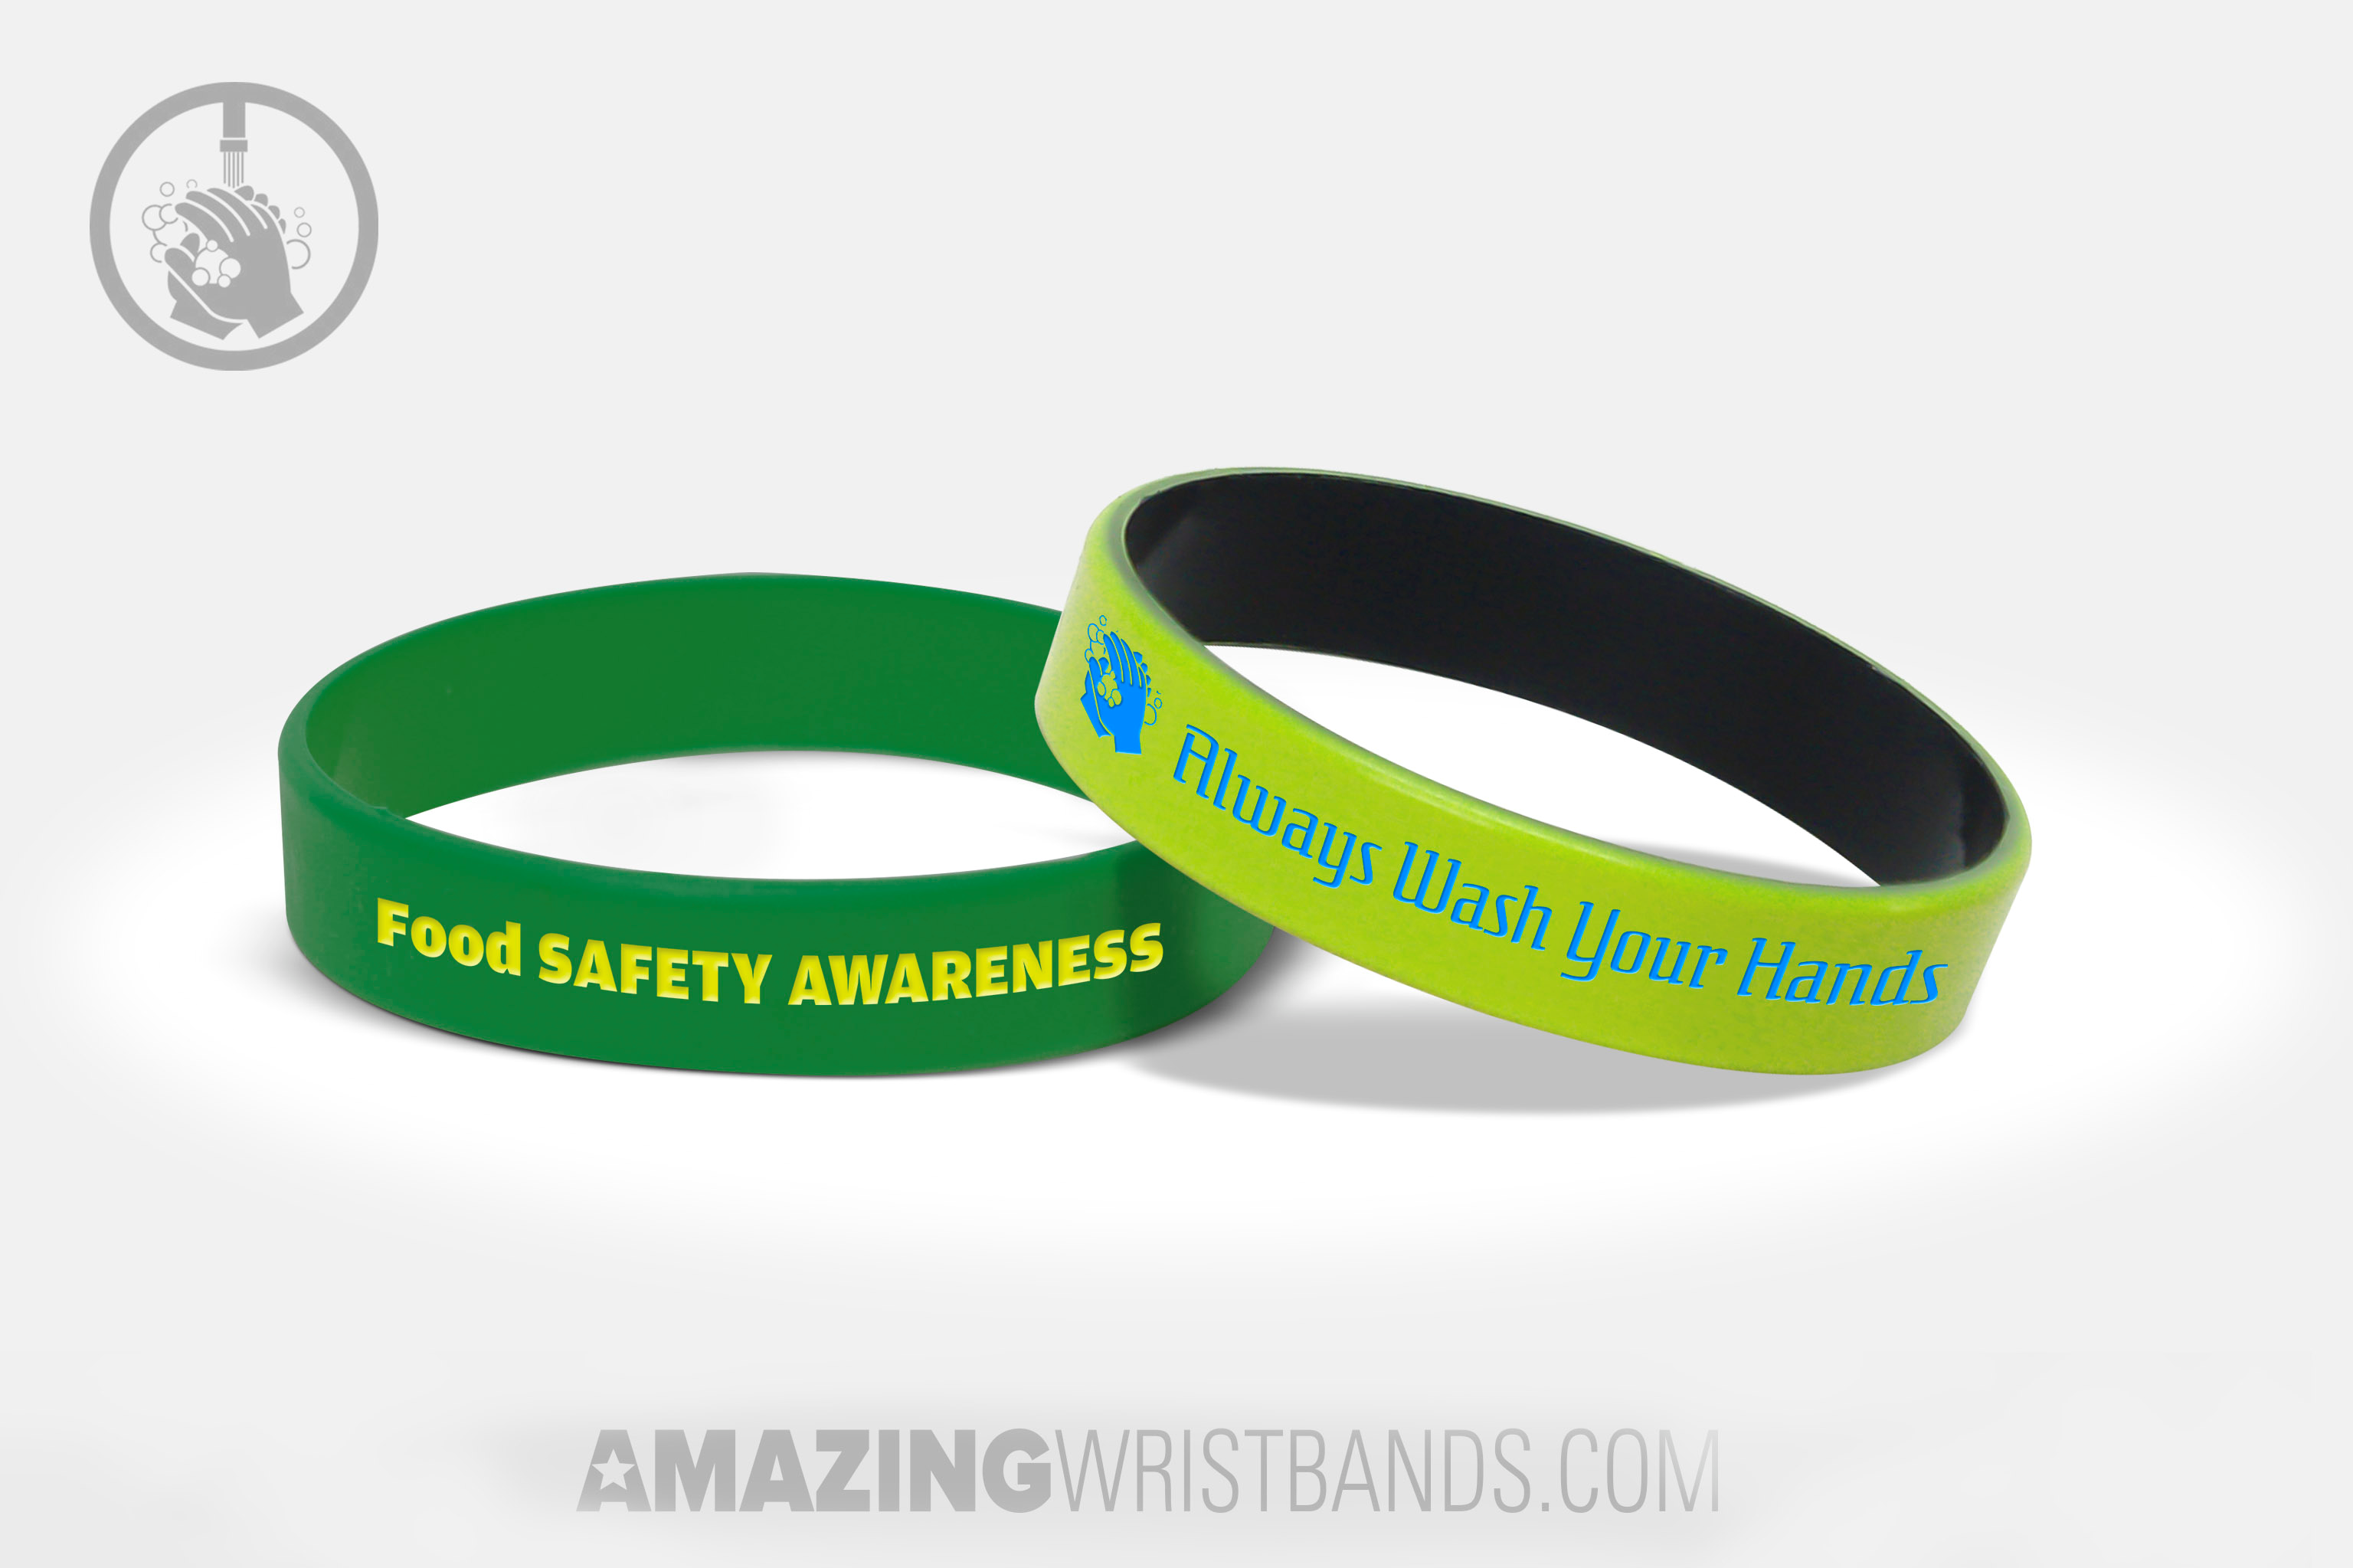 mik s alliance bracelet for image hidden copy tag front page hearts dysautonomia journal